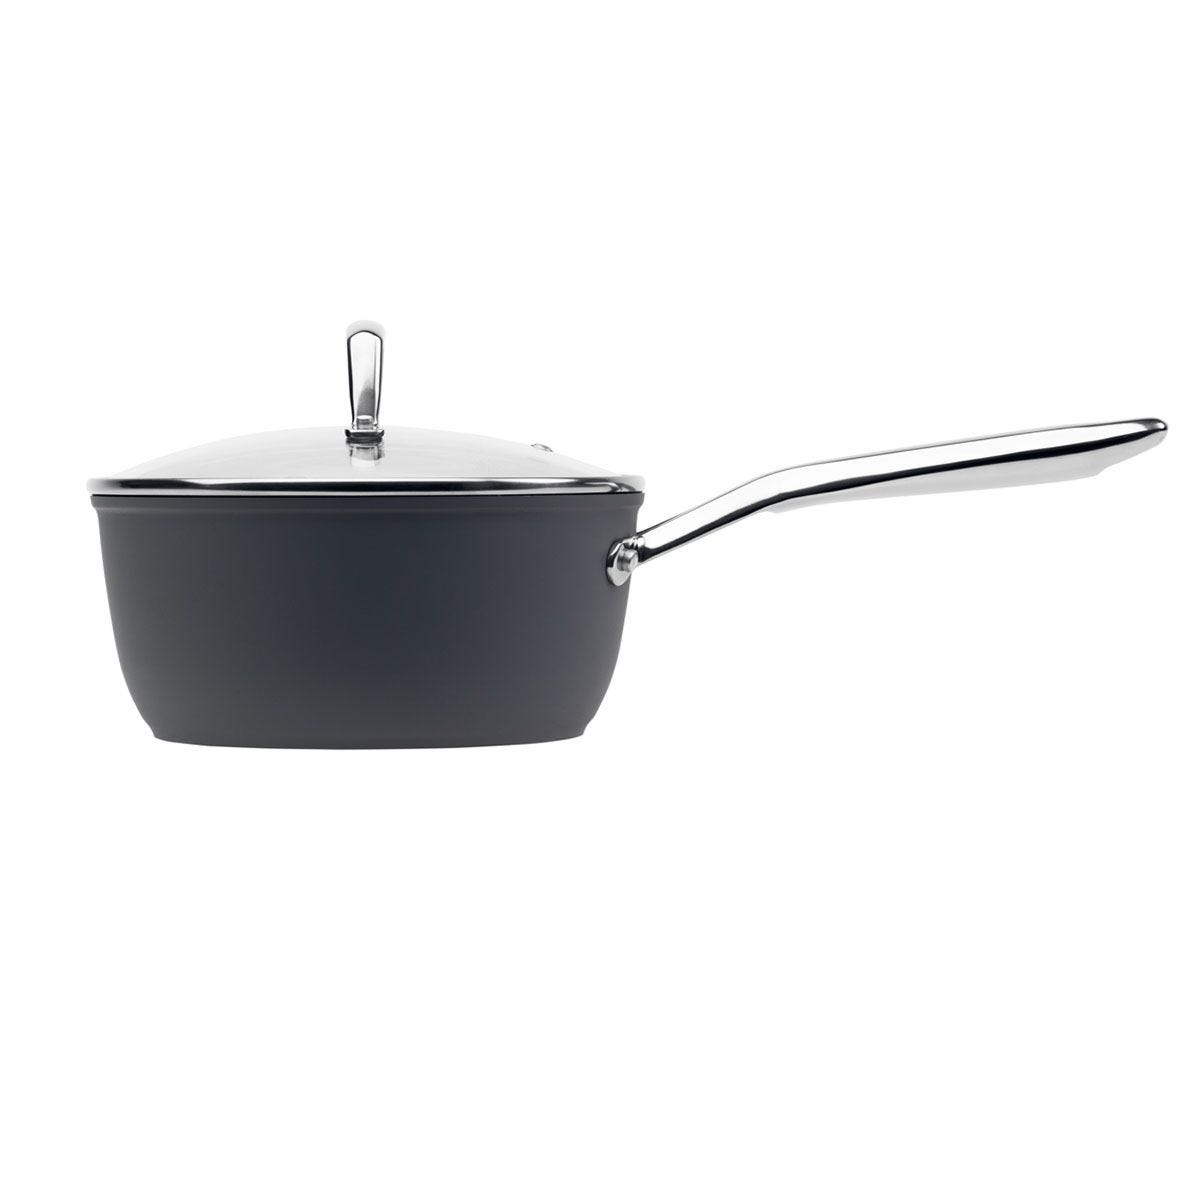 Haden Perth Sleek Non-Stick 16cm Saucepan - Grey